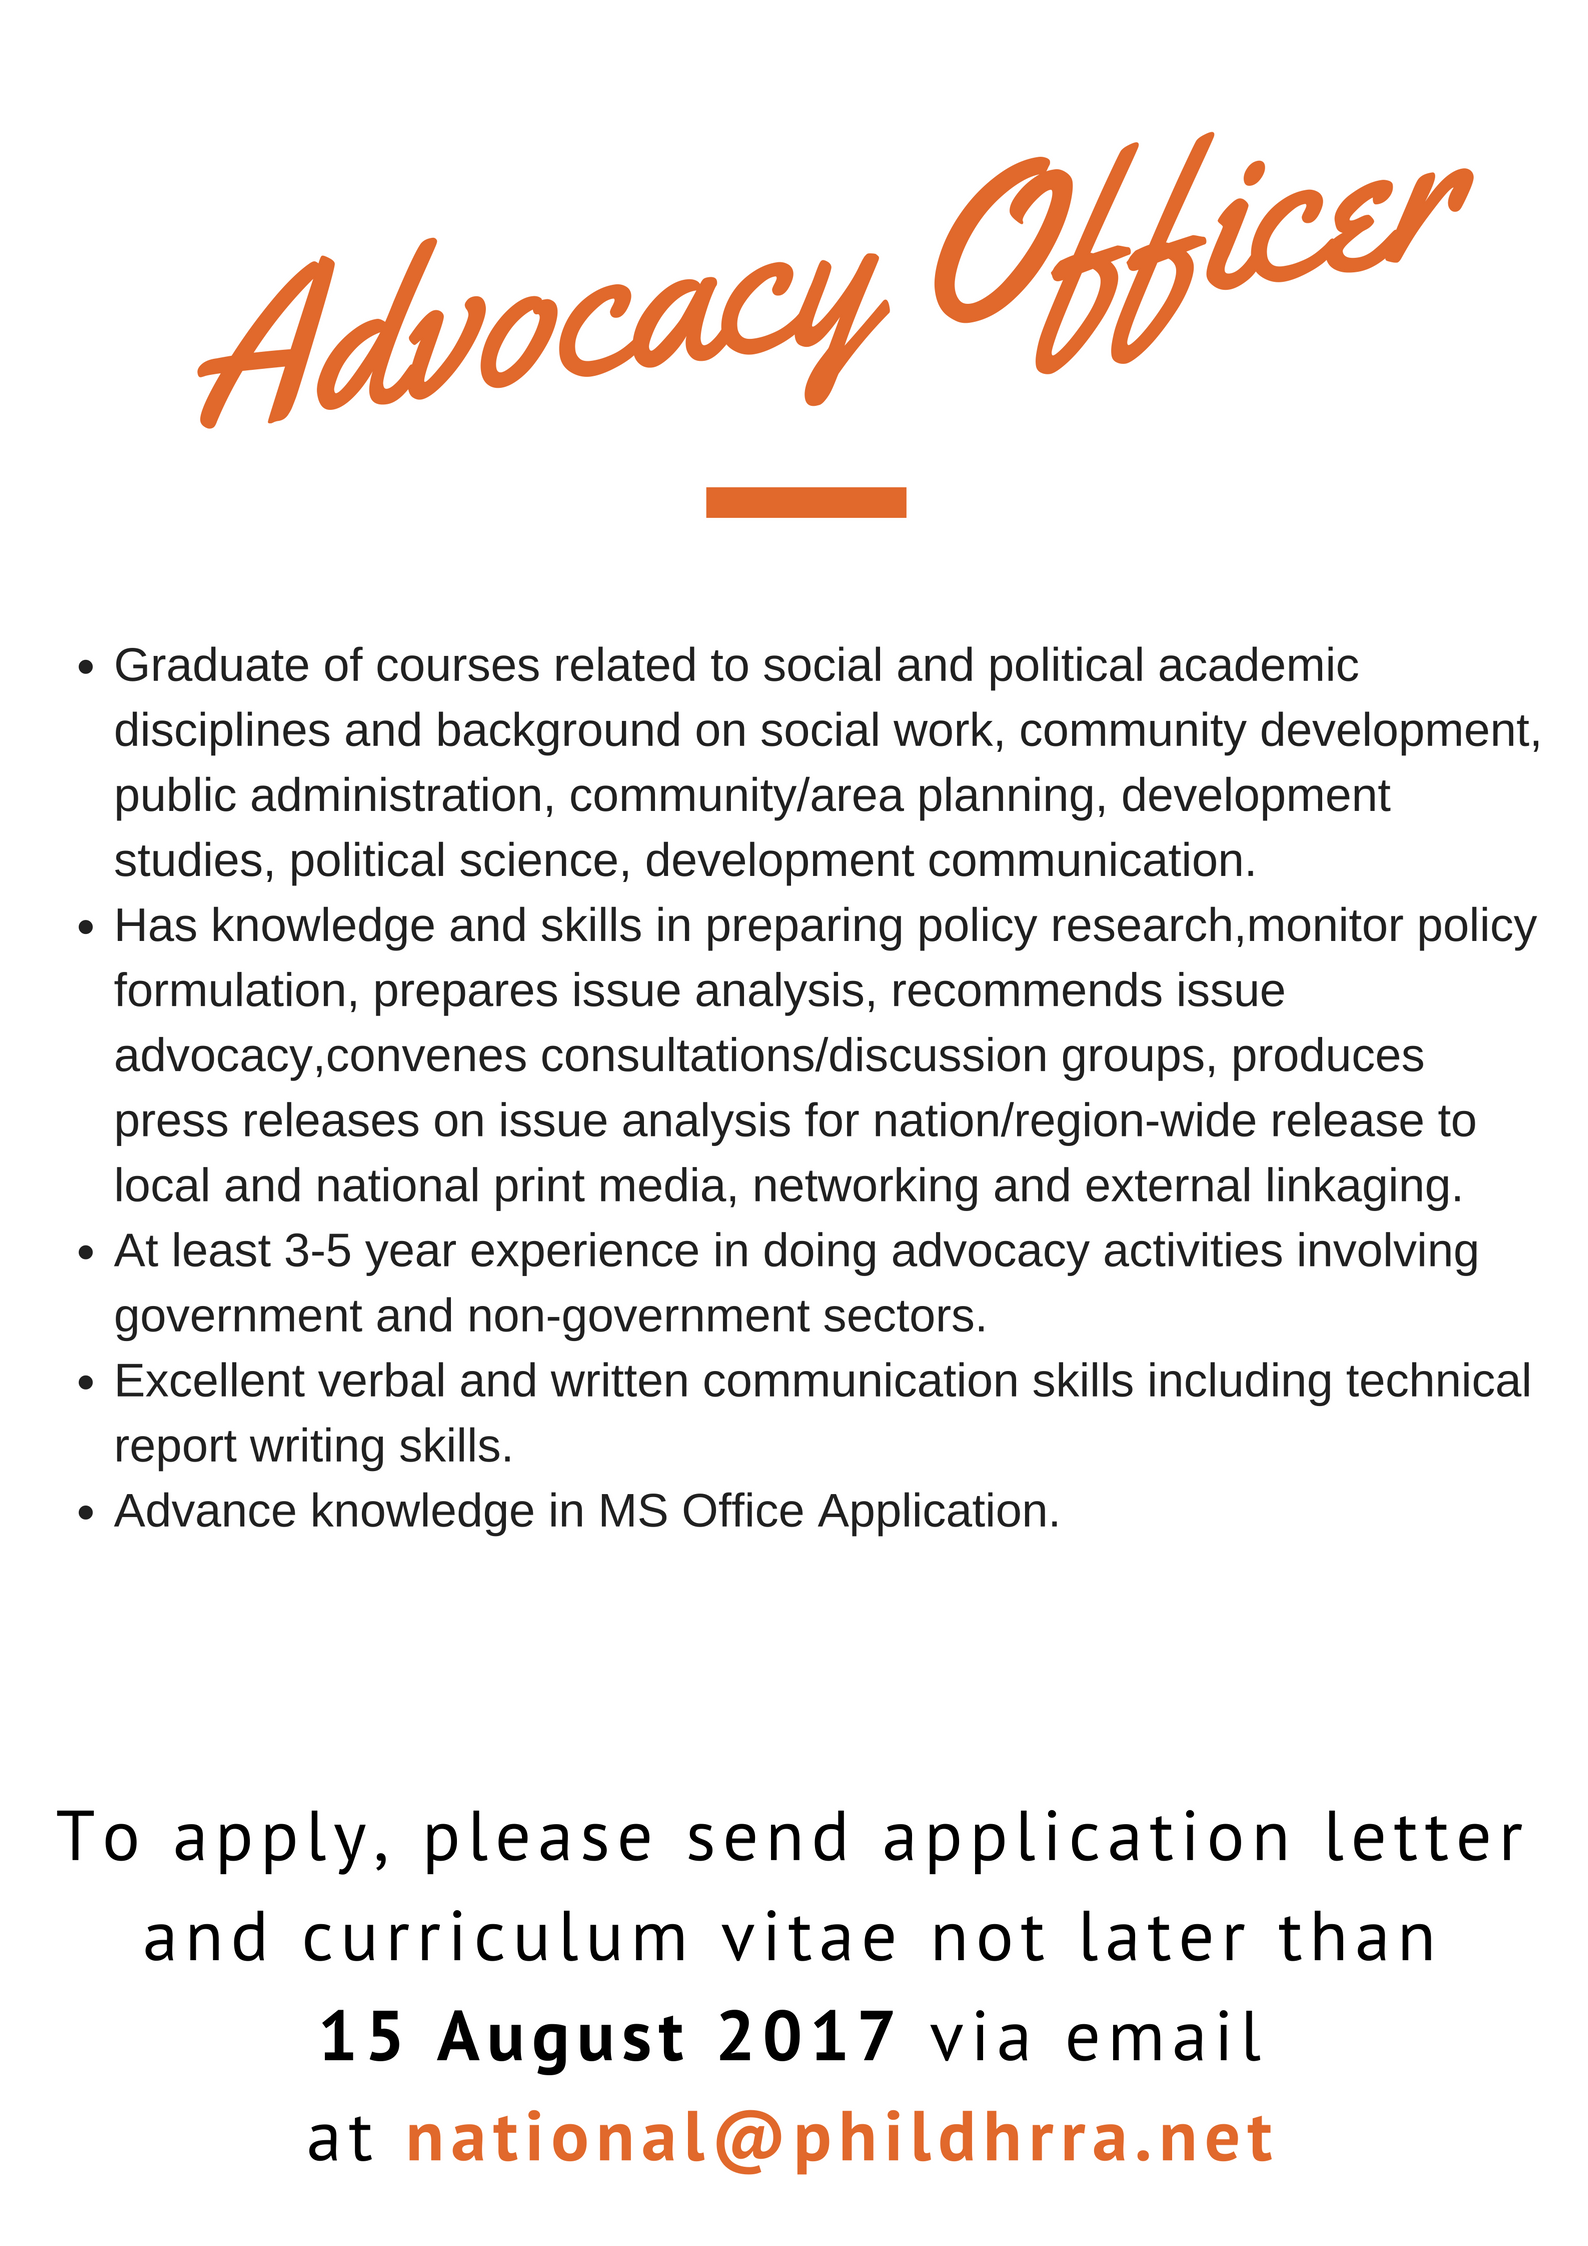 WE ARE HIRING: Advocacy Officer